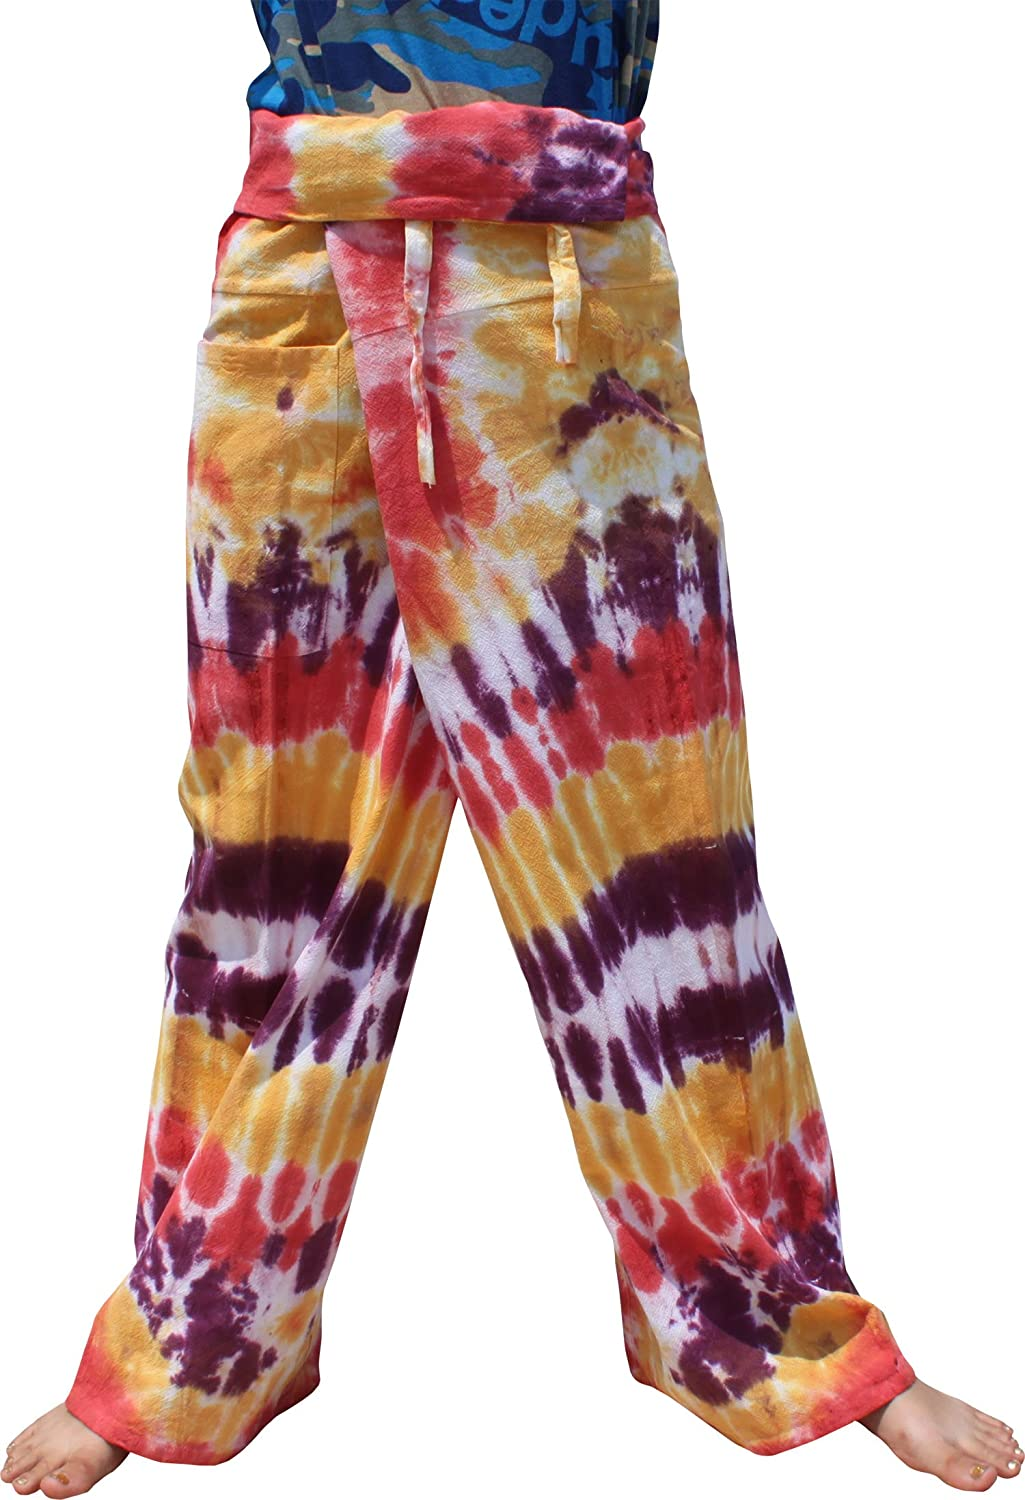 Raan Pah Muang Thick Muang Cotton Thai Fishermans Pants Vibrant TieDyed Tie Dye variant15190AMZ